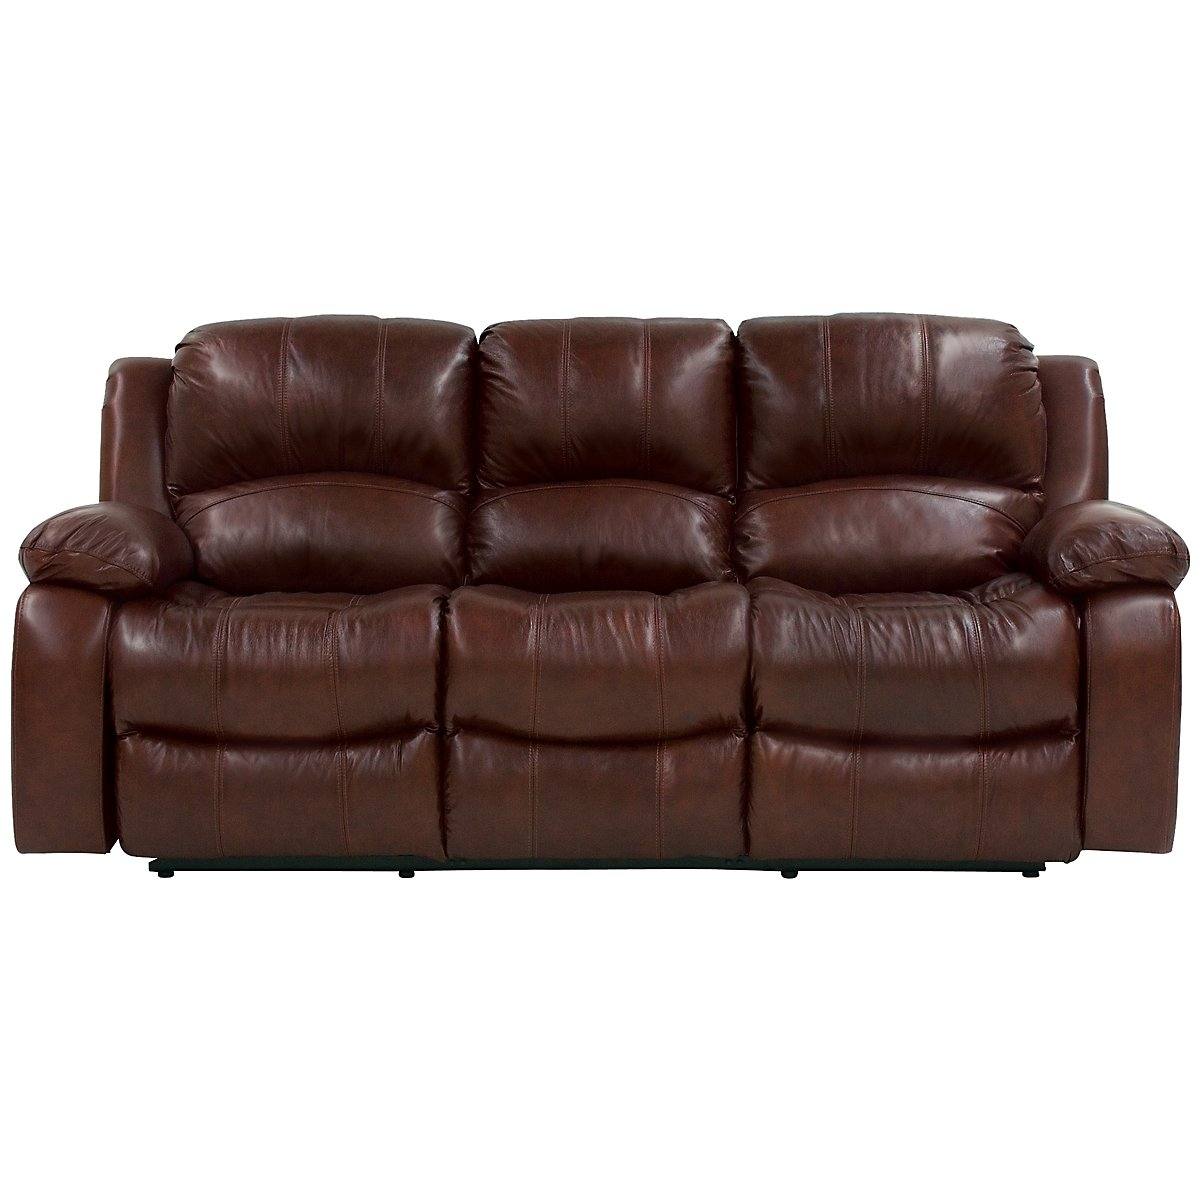 city furniture tyler md brown leather  vinyl power reclining sofa - tyler medium brown leather  vinyl power reclining sofa